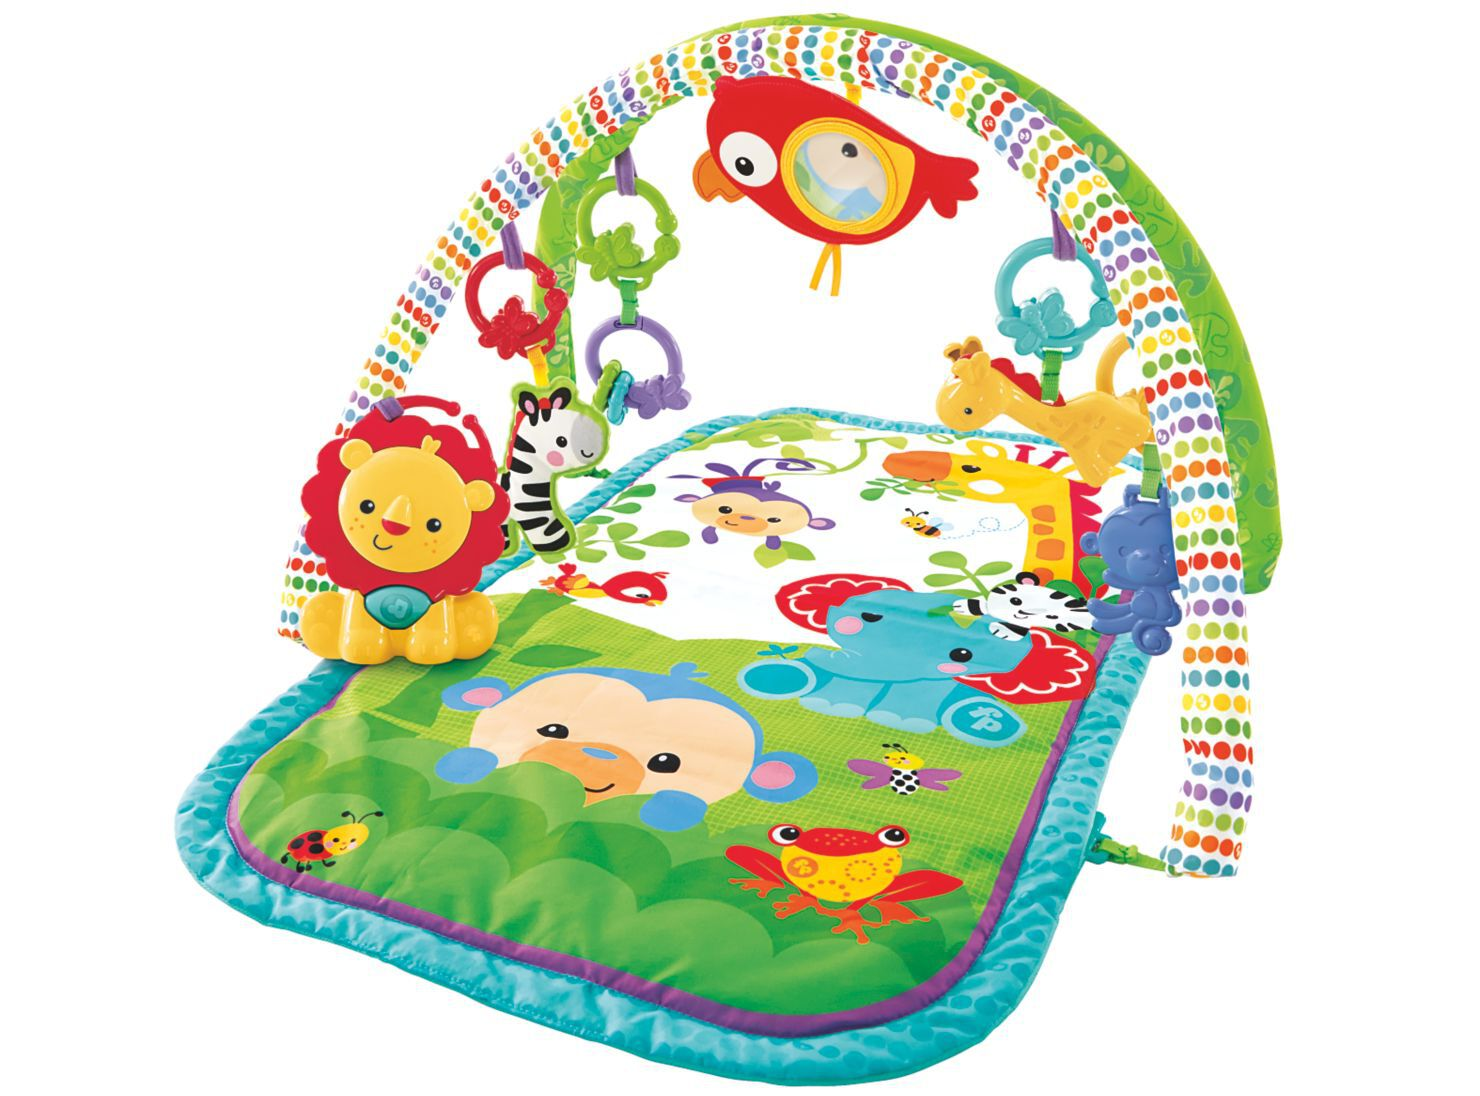 4b5718778 Images. Fisher Price Gimnasio Musical 3 en 1 Amigos de la Naturaleza ...